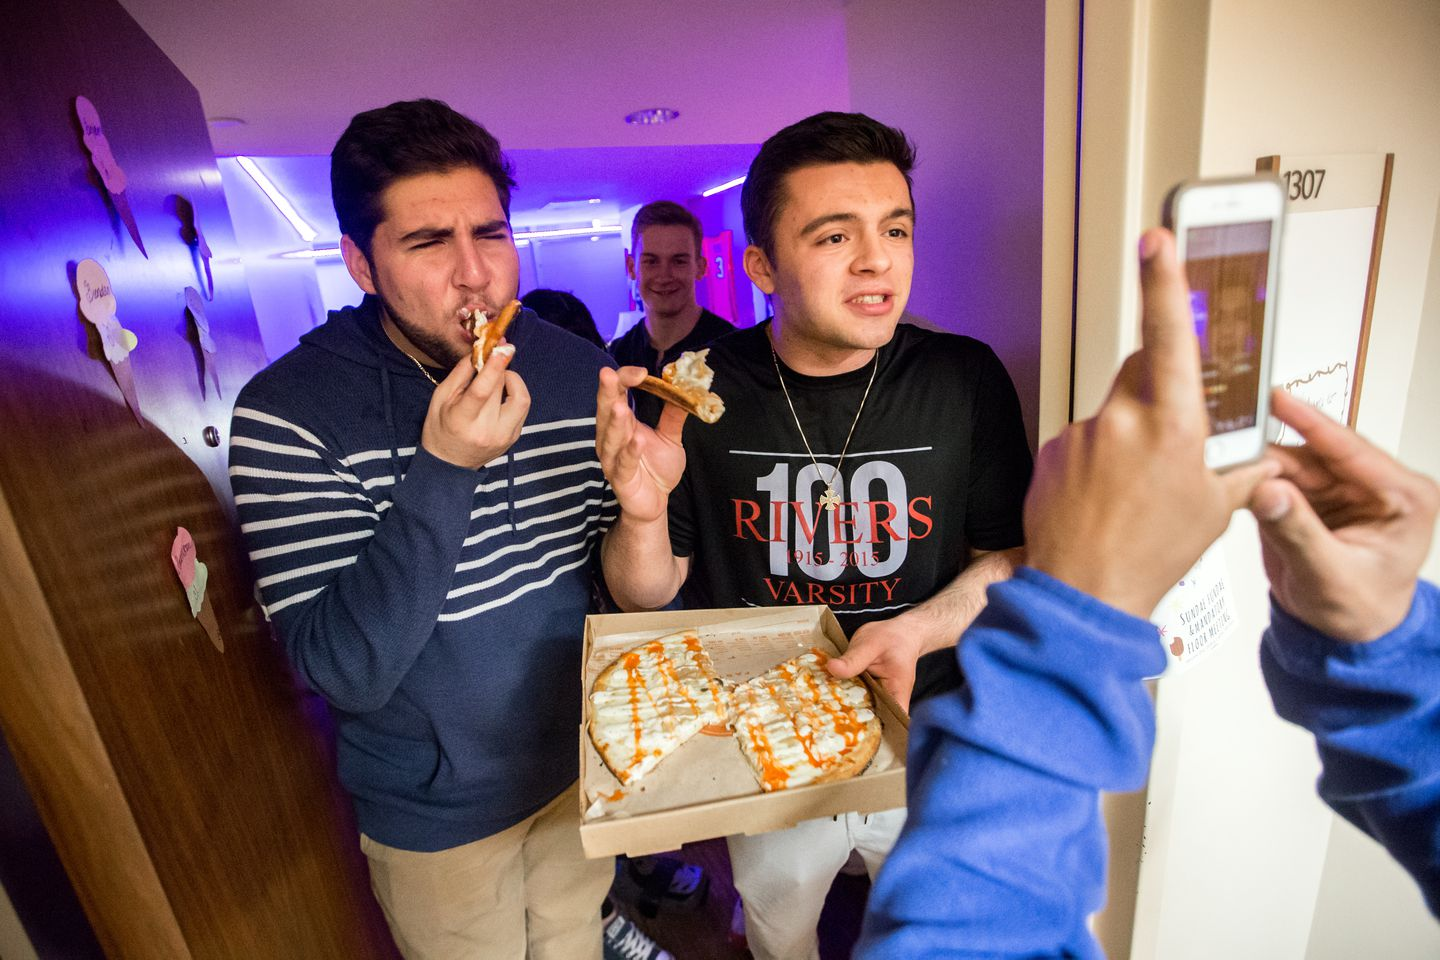 Students Eric Harpootian and Theodore Bakas received a pizza delivery from Marc Prophet of Stoovy Snacks, while Prophet live streamed the delivery to the company's followers on social media. Stoovy Snacks delivers food directly to students' rooms at Boston University's Student Village 2 dormitory.